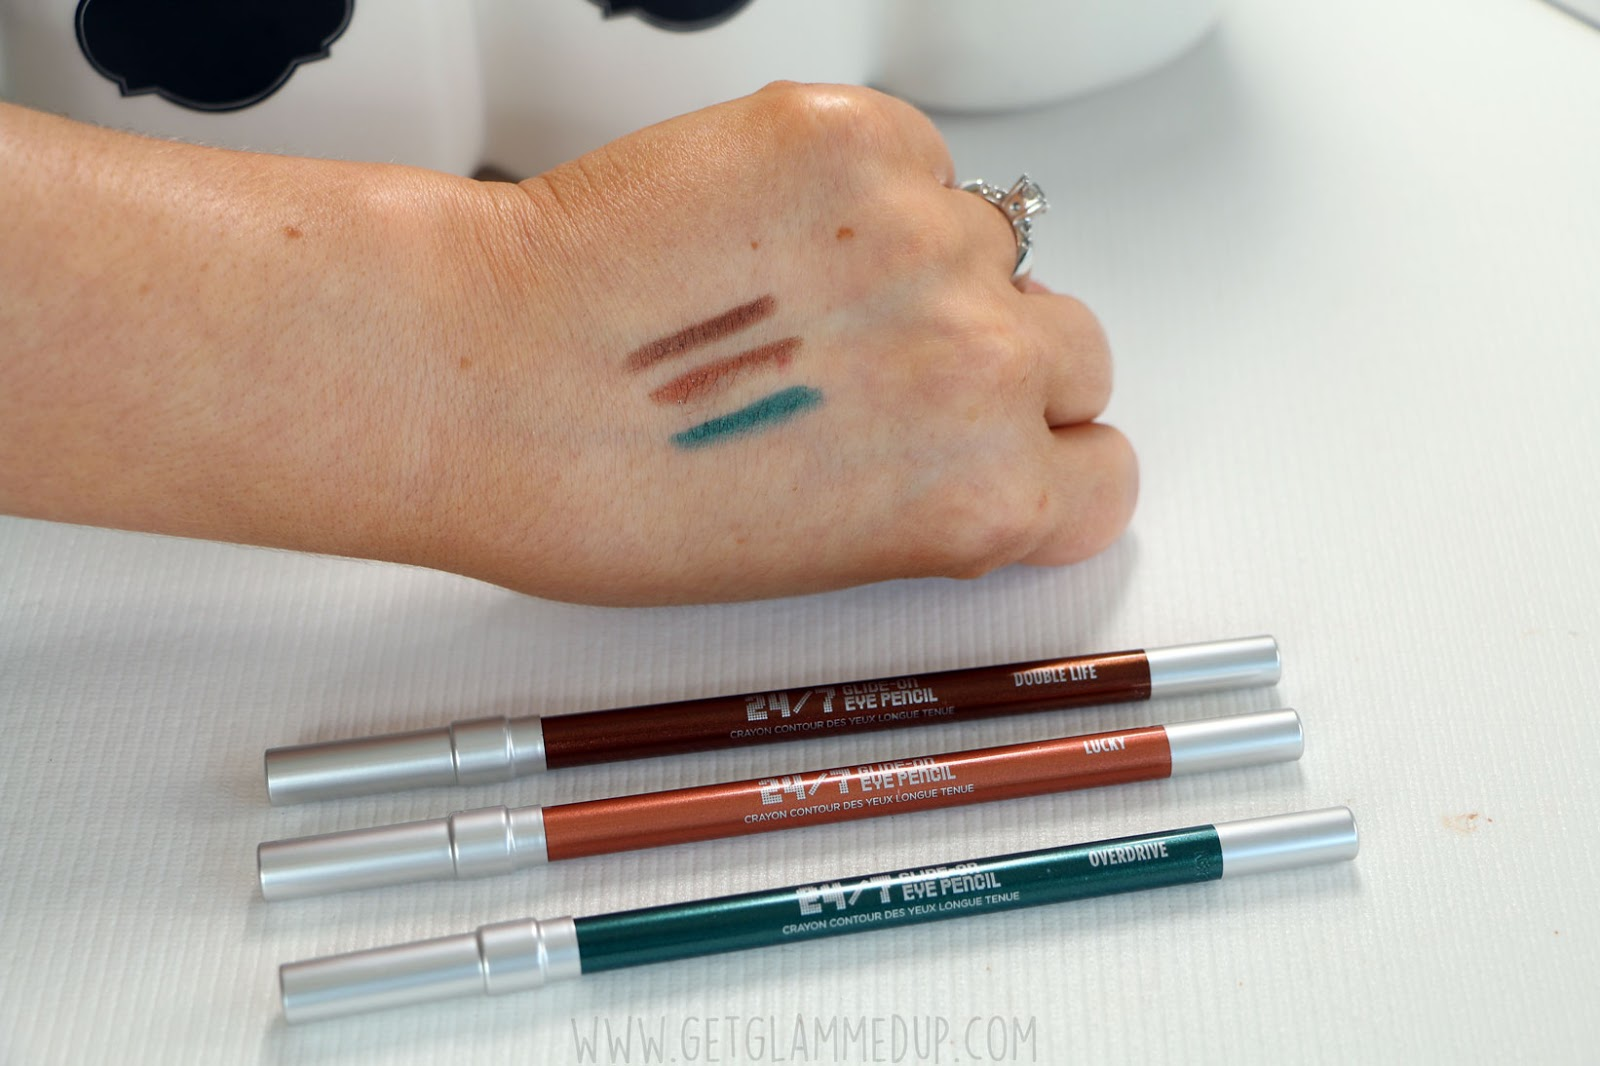 Urban Decay Born to Run 24/7 Eyeliner Pencils